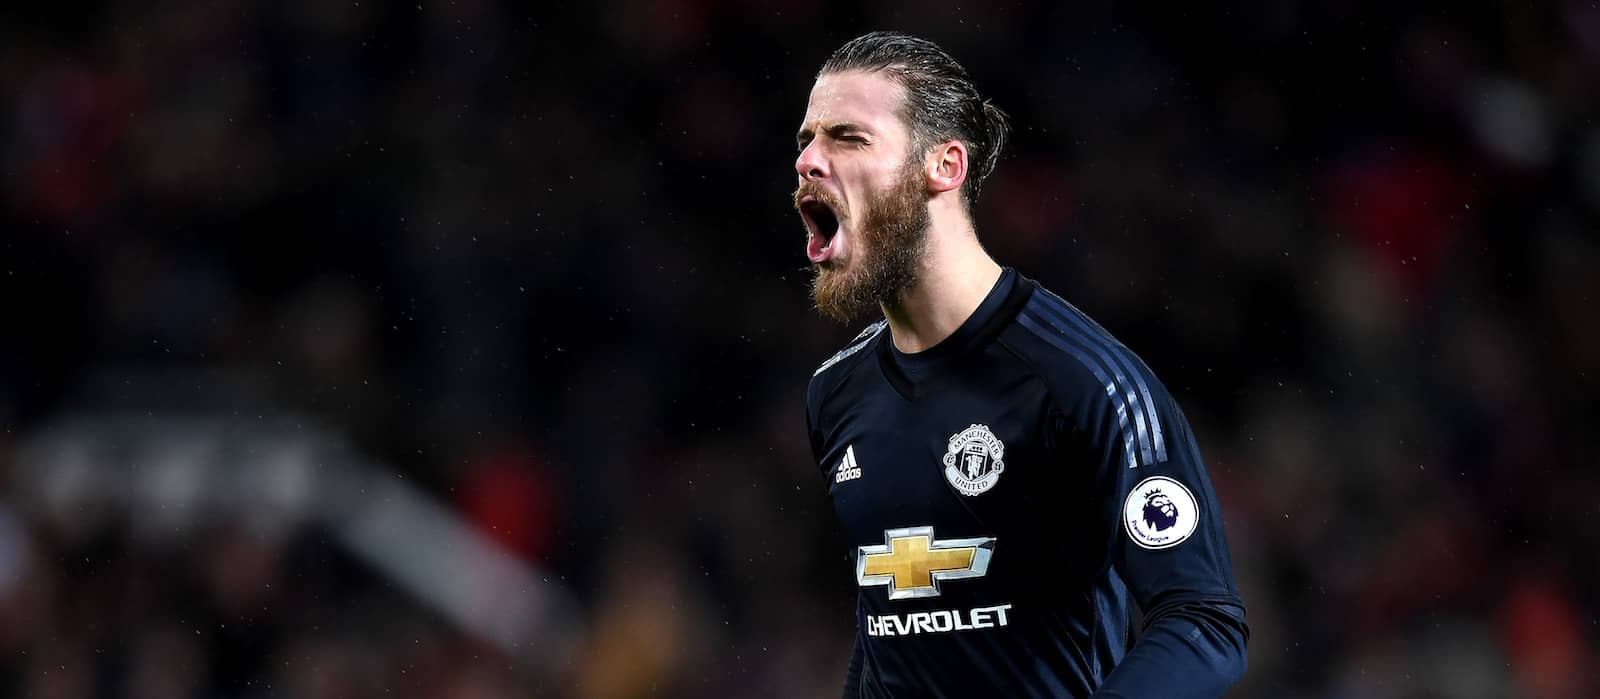 Manchester United and David de Gea's camp 'confident' of agreeing new deal – report